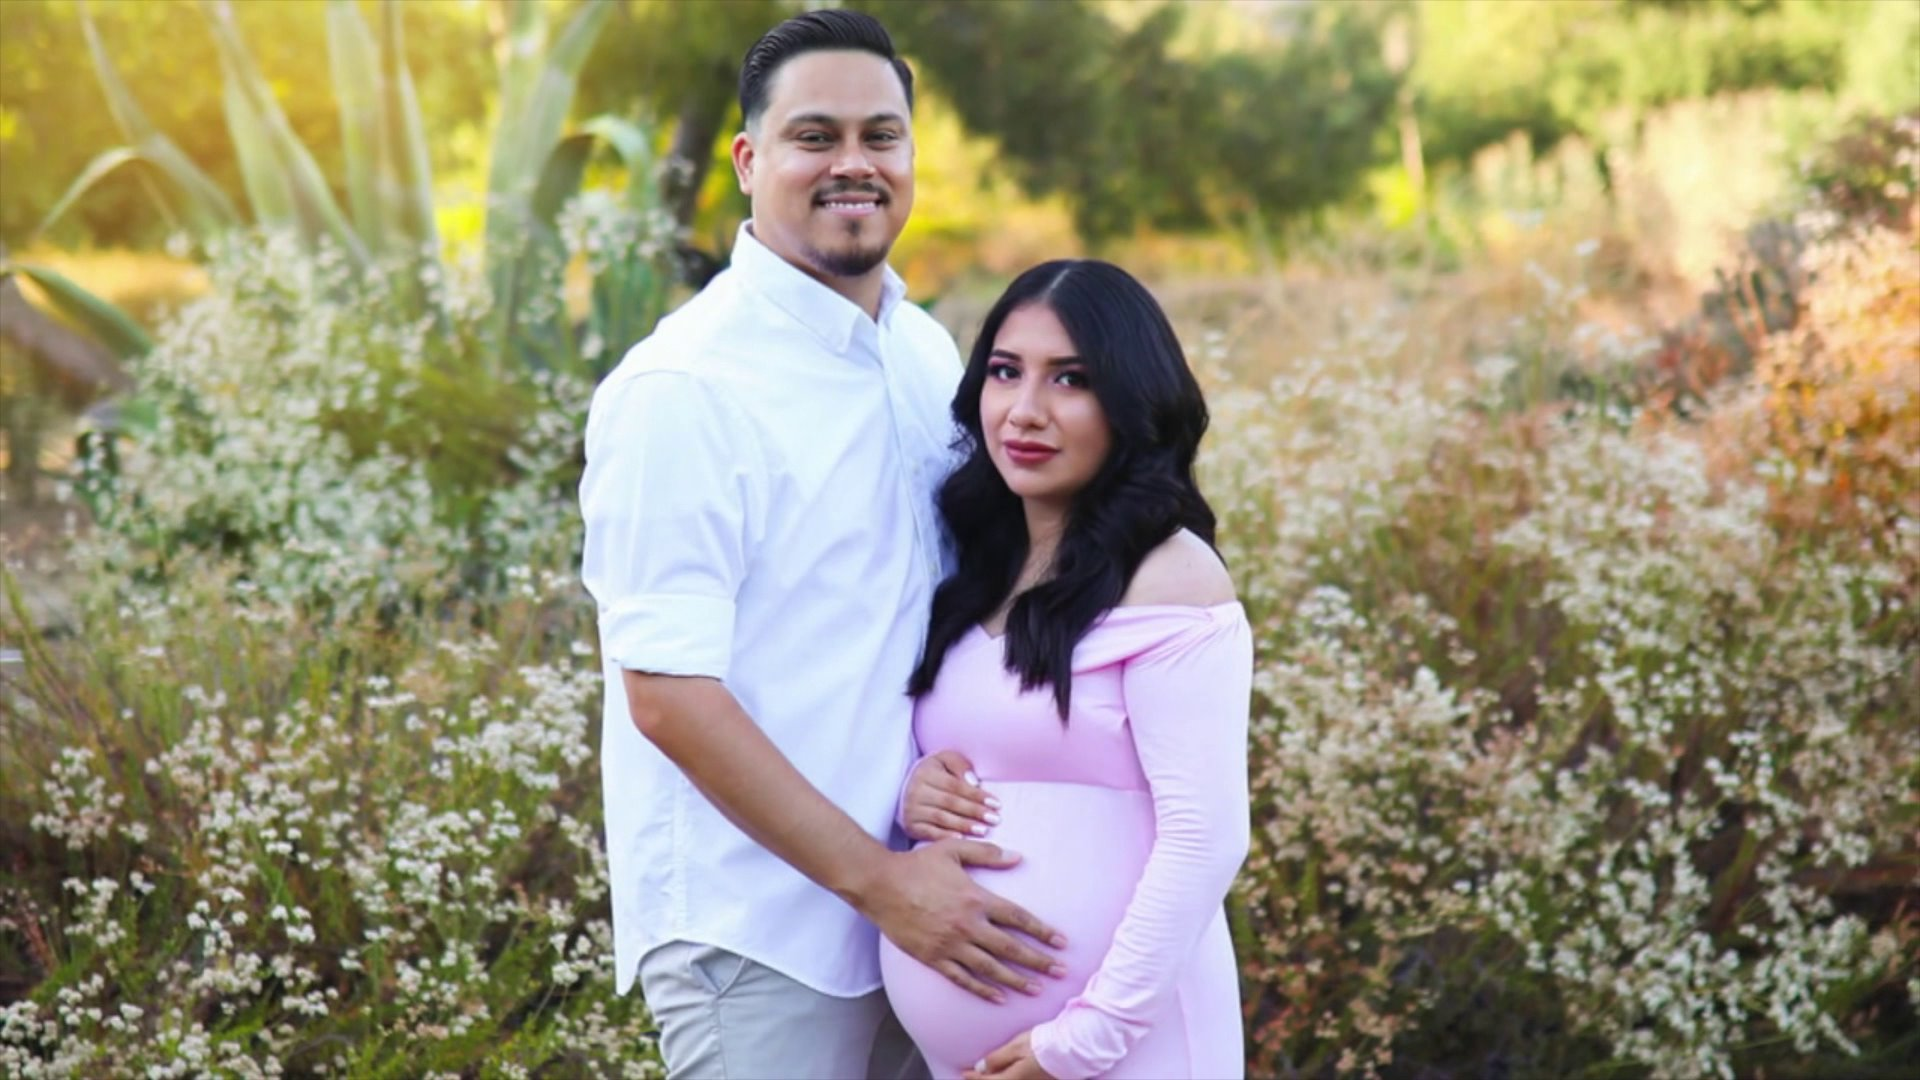 James Alvarez and Yesenia Aguilar are seen in a family photo provided to KTLA.